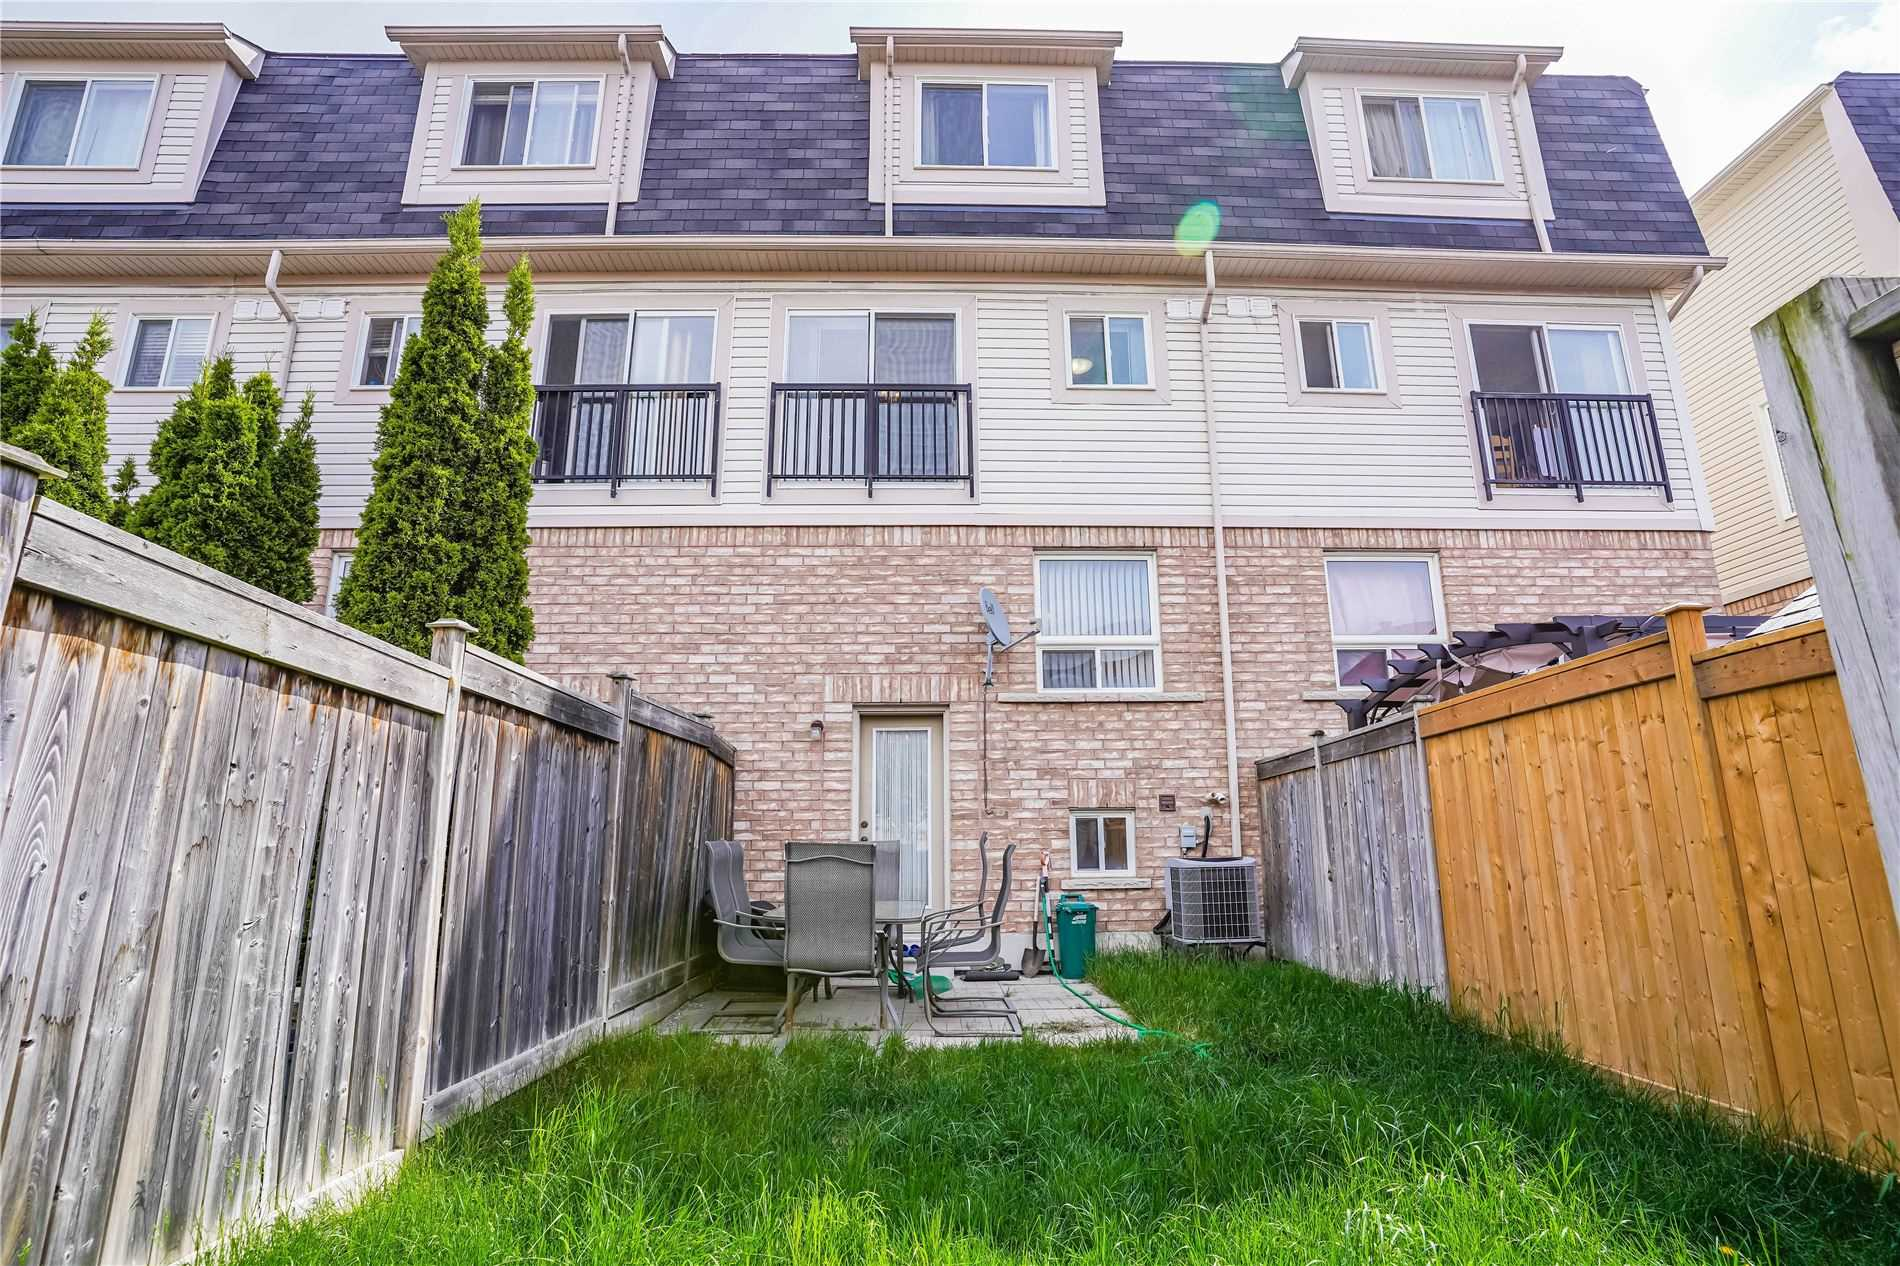 Image 18 of 25 showing inside of 3 Bedroom Condo Townhouse 3-Storey for Sale at 68 Oakins Lane W Unit# 34, Ajax L1T0H1